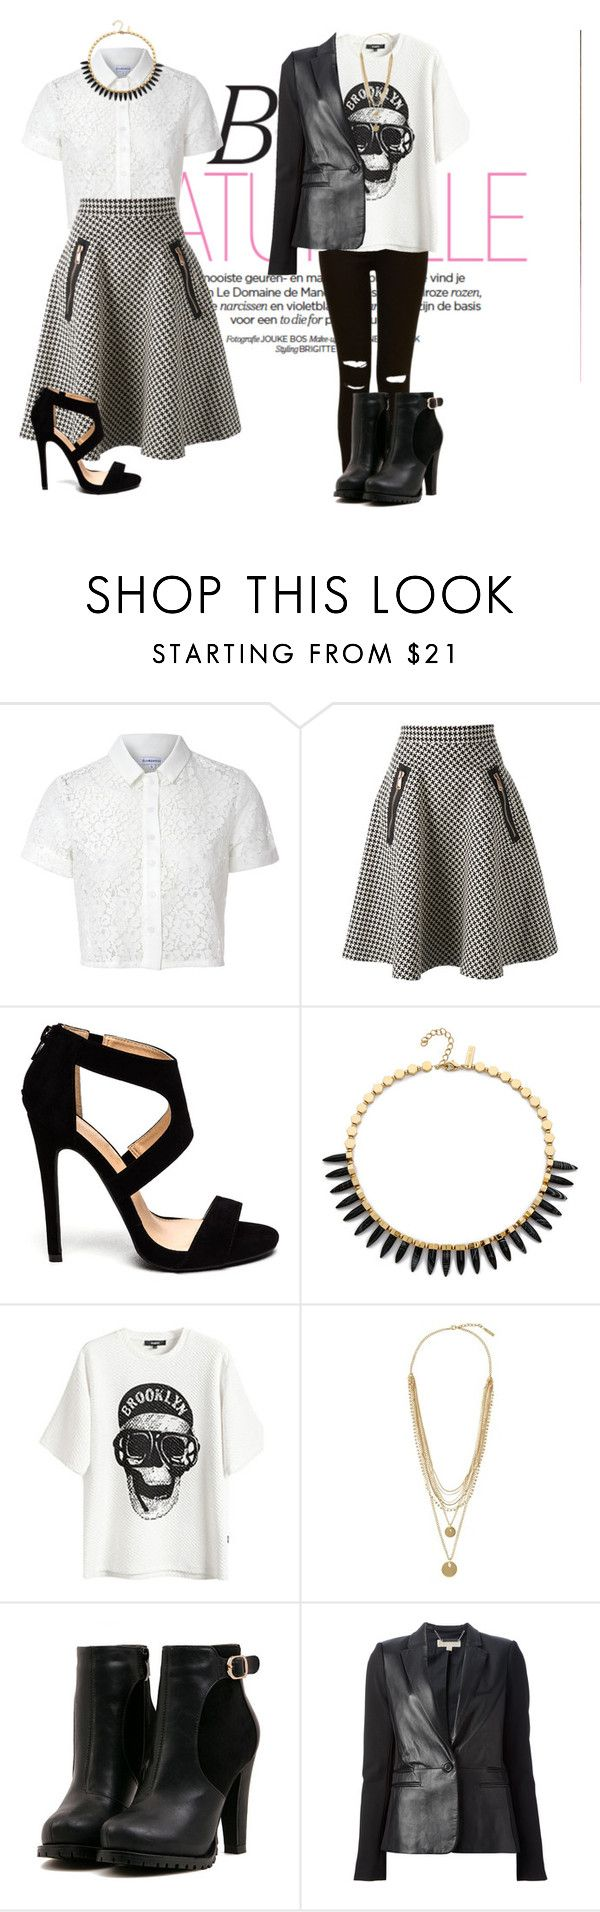 """""""...Good...Bad"""" by maria-alexandra2011 ❤ liked on Polyvore featuring Glamorous, Coast + Weber + Ahaus, Rachel Zoe, Vince Camuto and MICHAEL Michael Kors"""